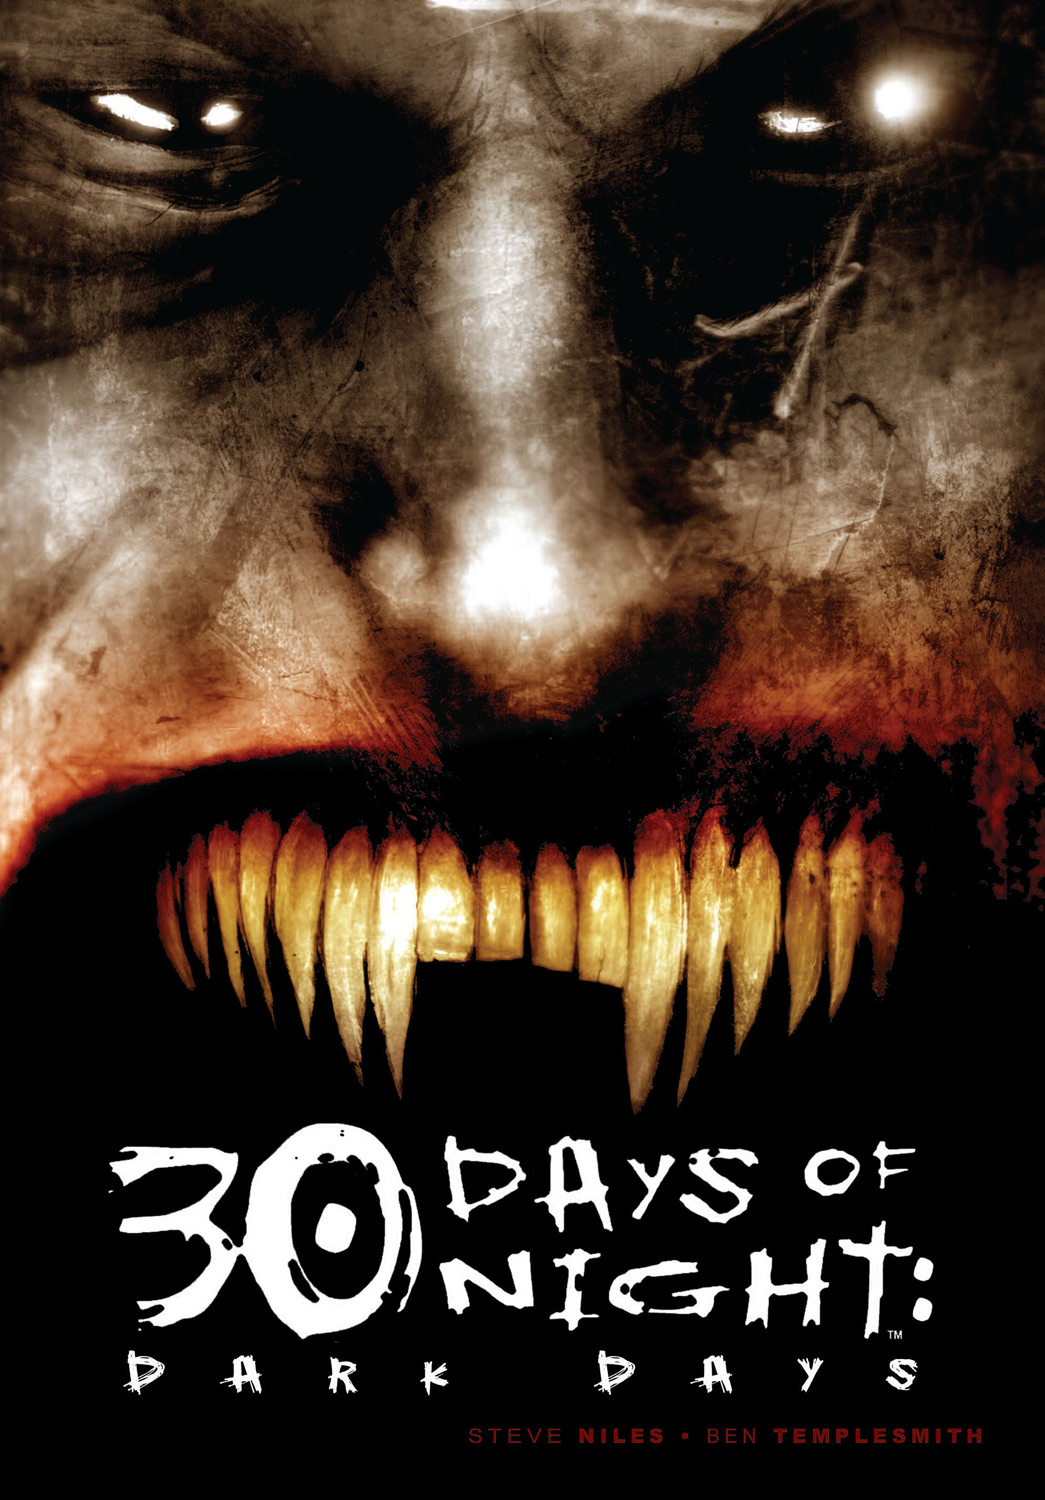 30 Days of Night – Dark Days | Comics - Comics Dune | Buy ...